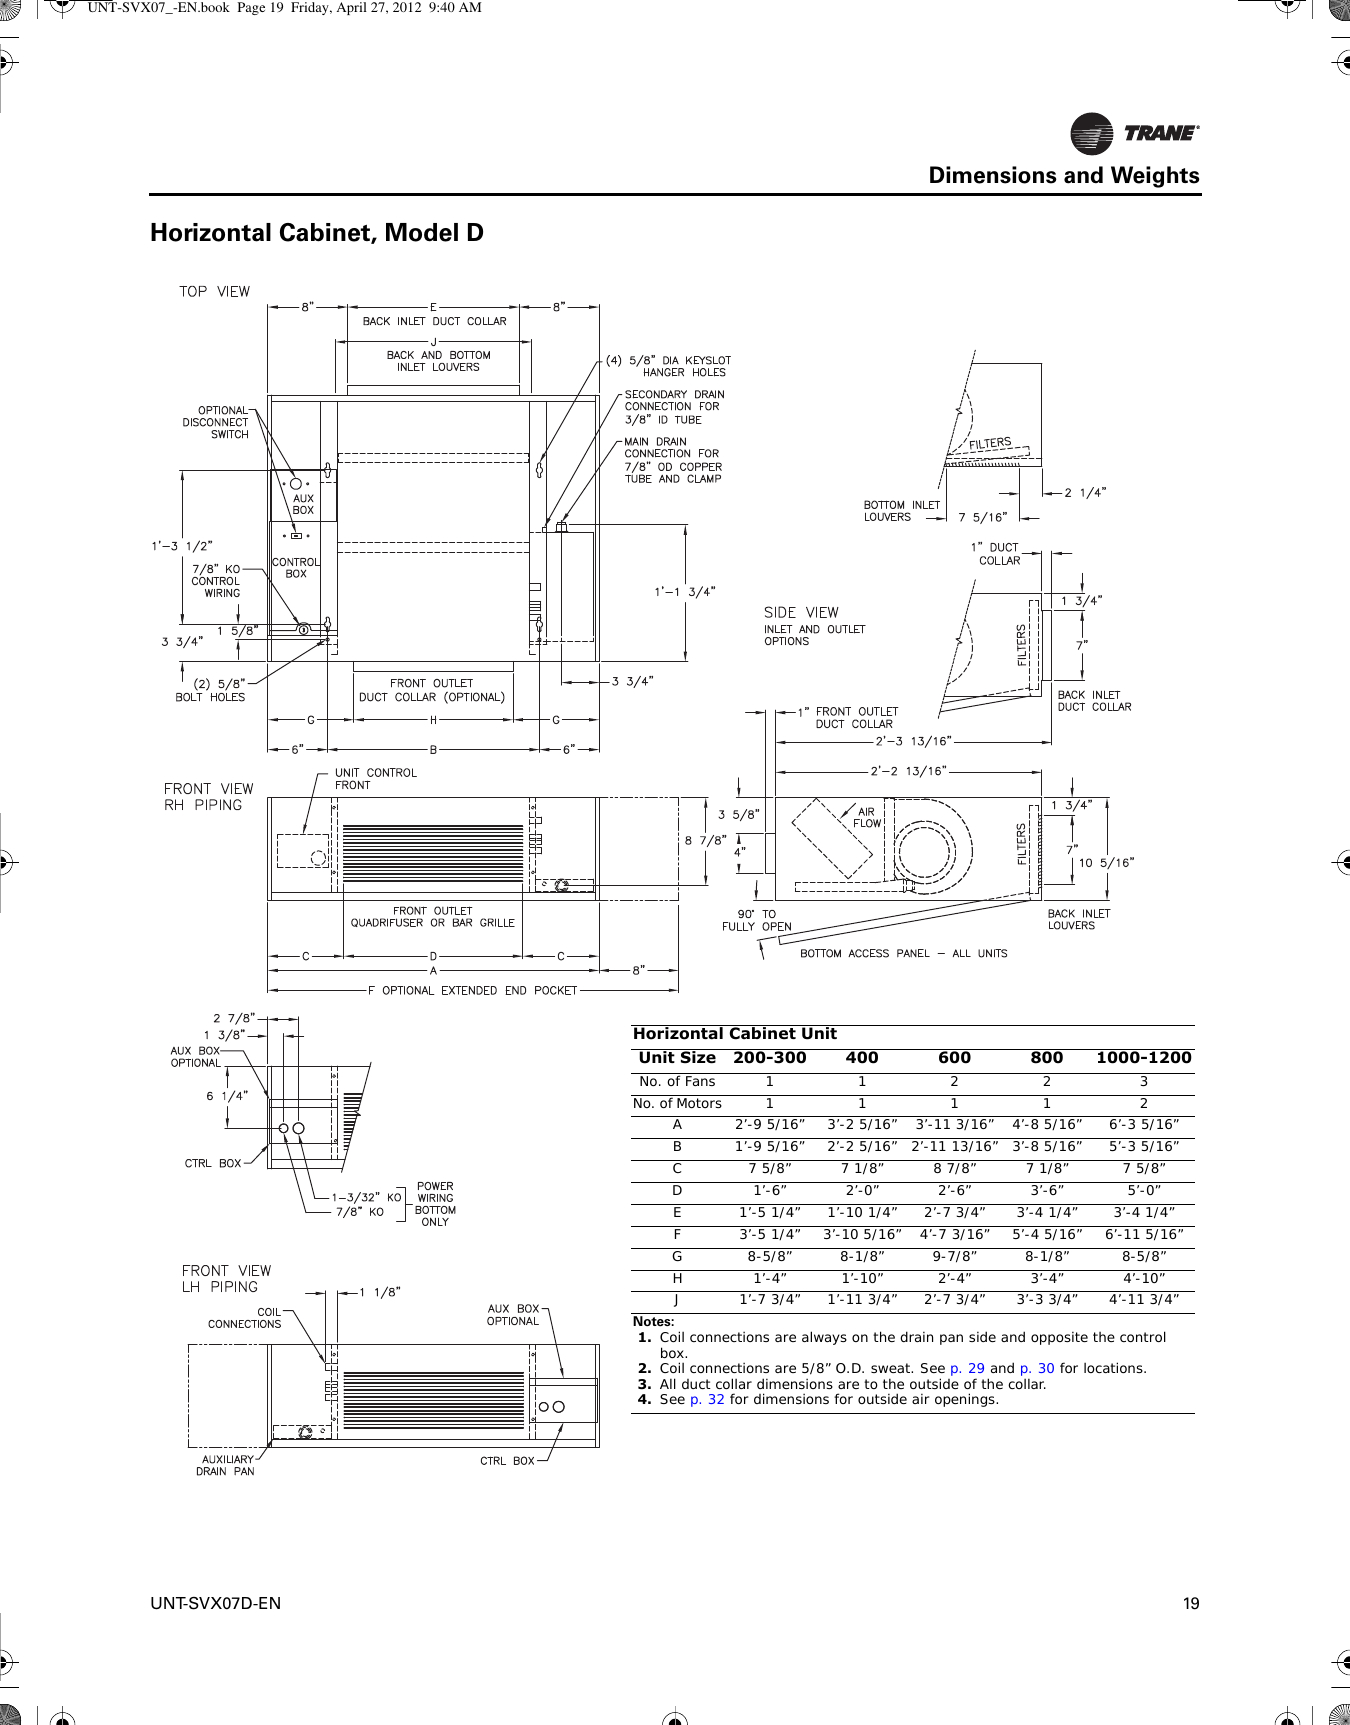 peterbilt 330 wiring diagram Download-Peterbilt Wiring Diagram Free Awesome Heat Pump Troubleshooting Guide Free Troubleshooting Examples 20-o